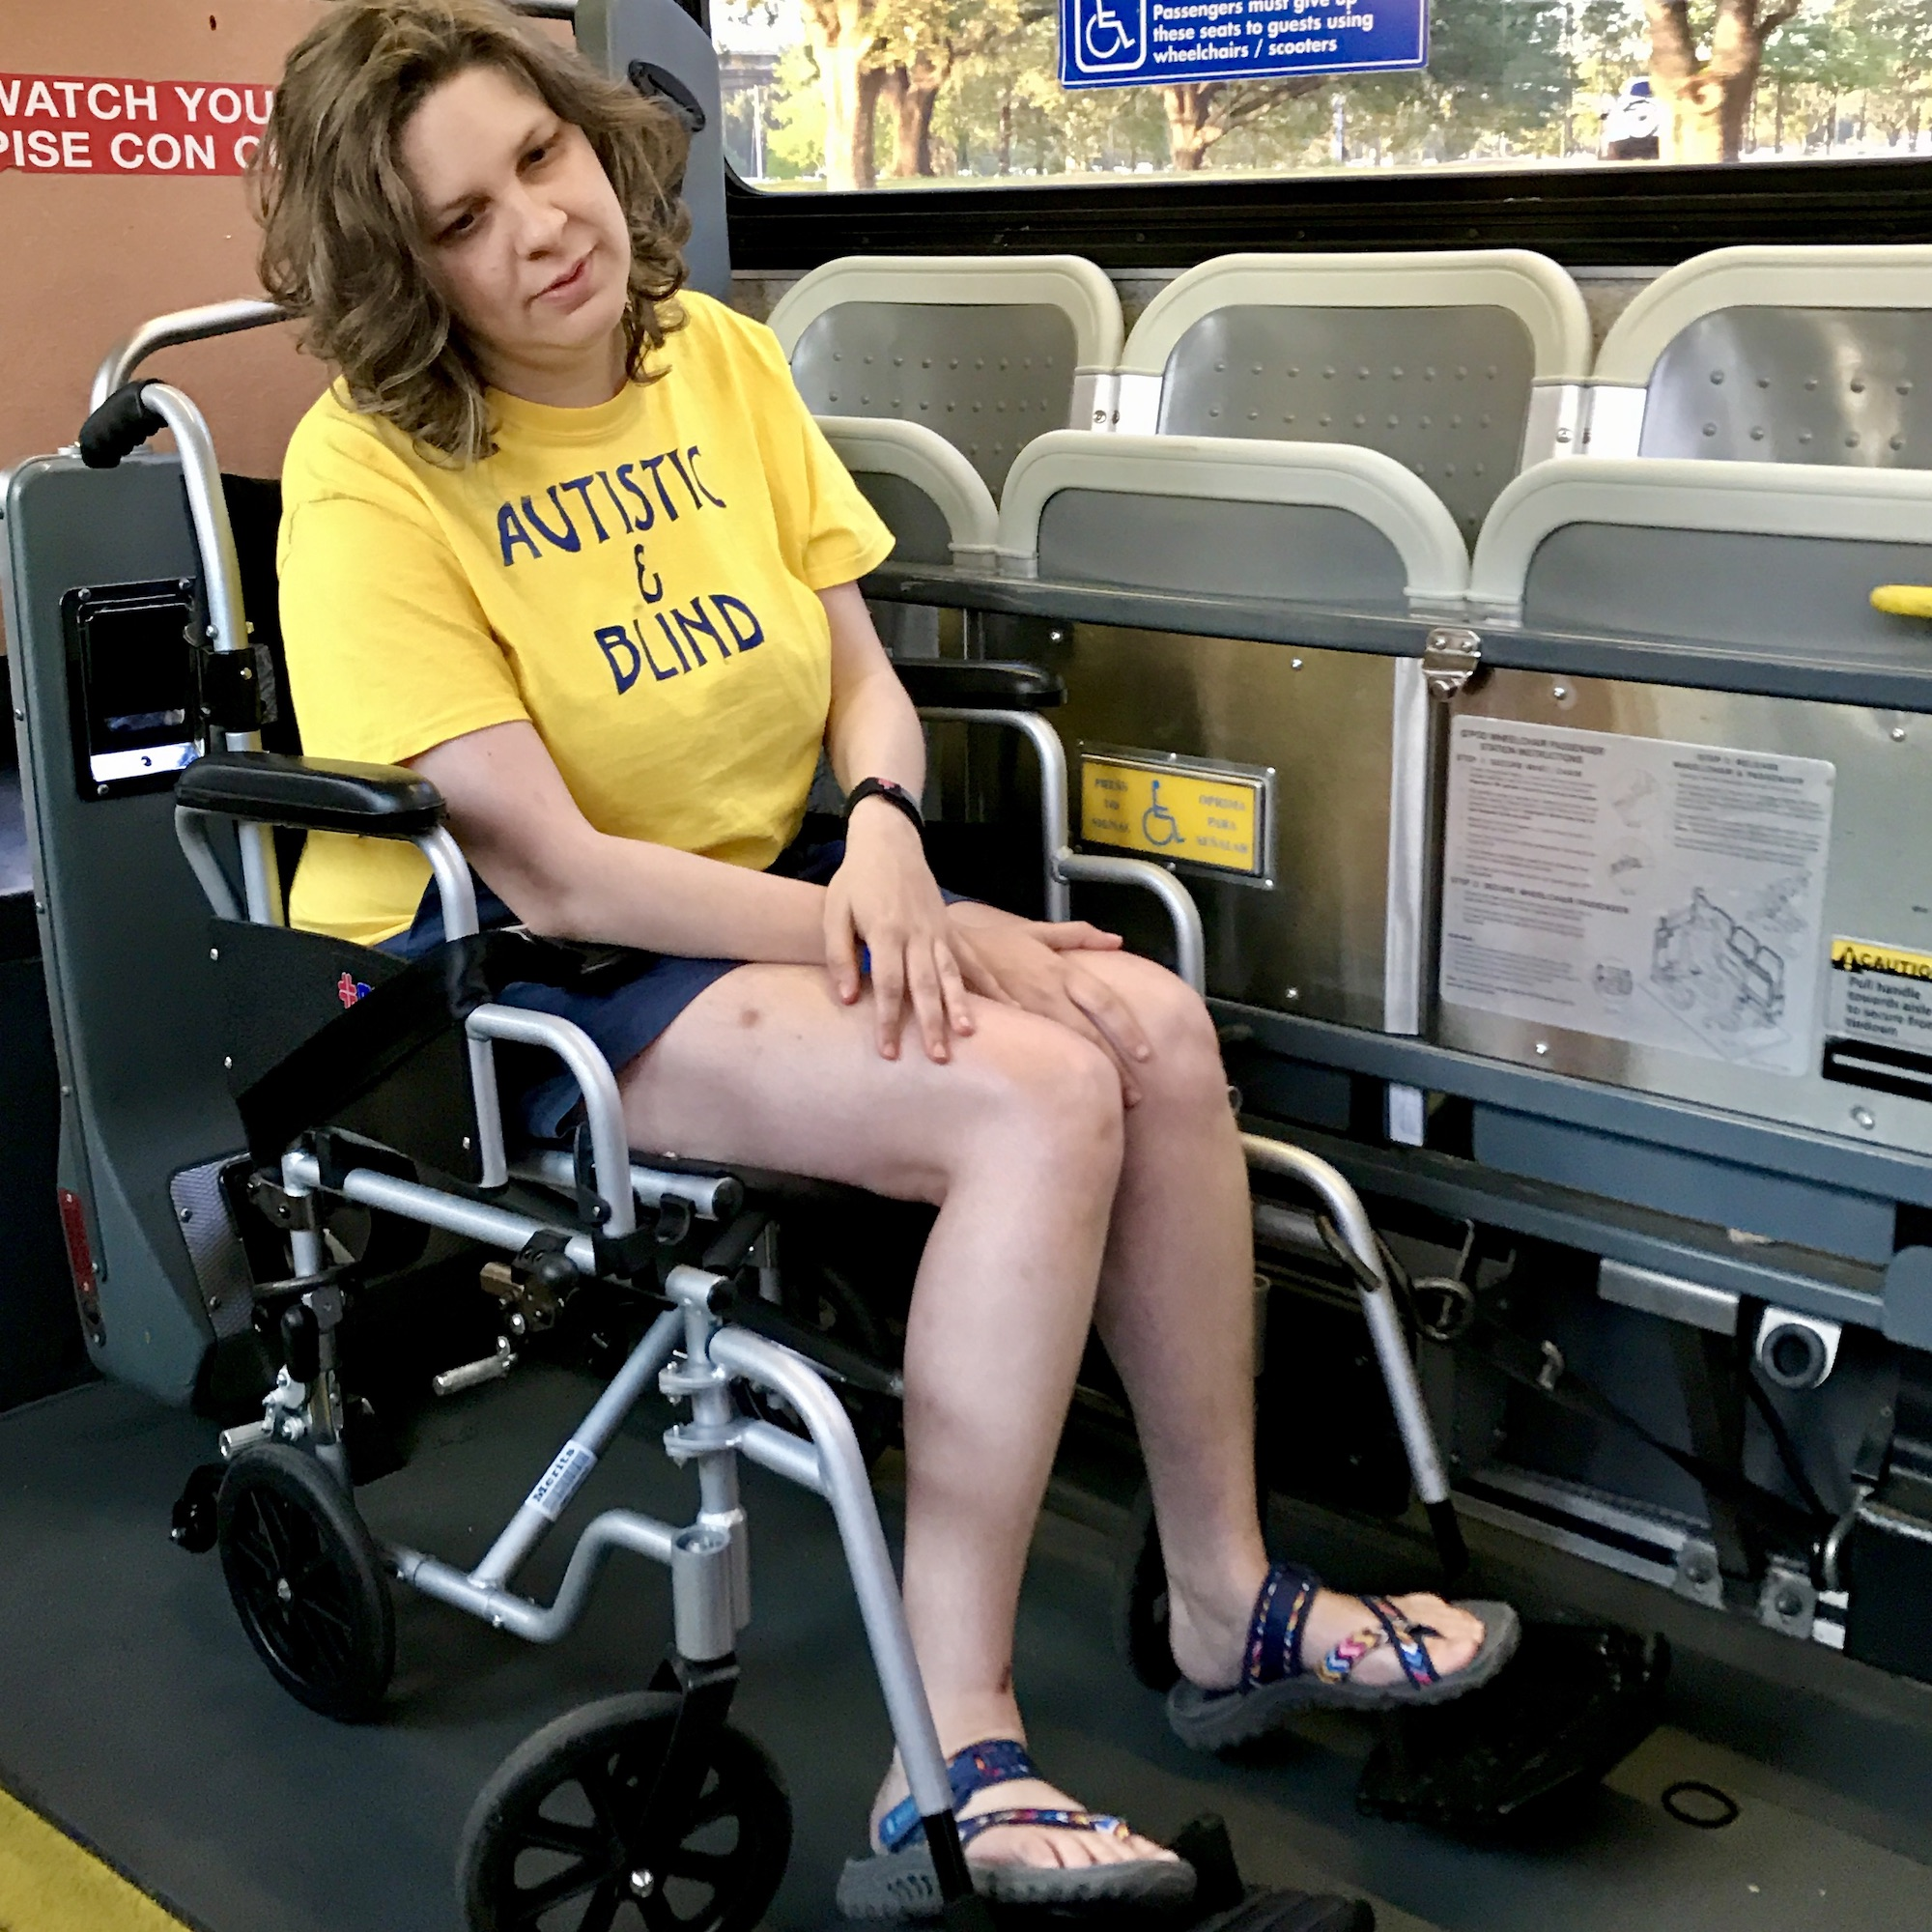 Jess is sitting in a wheelchair and the chair is strapped in on a bus.